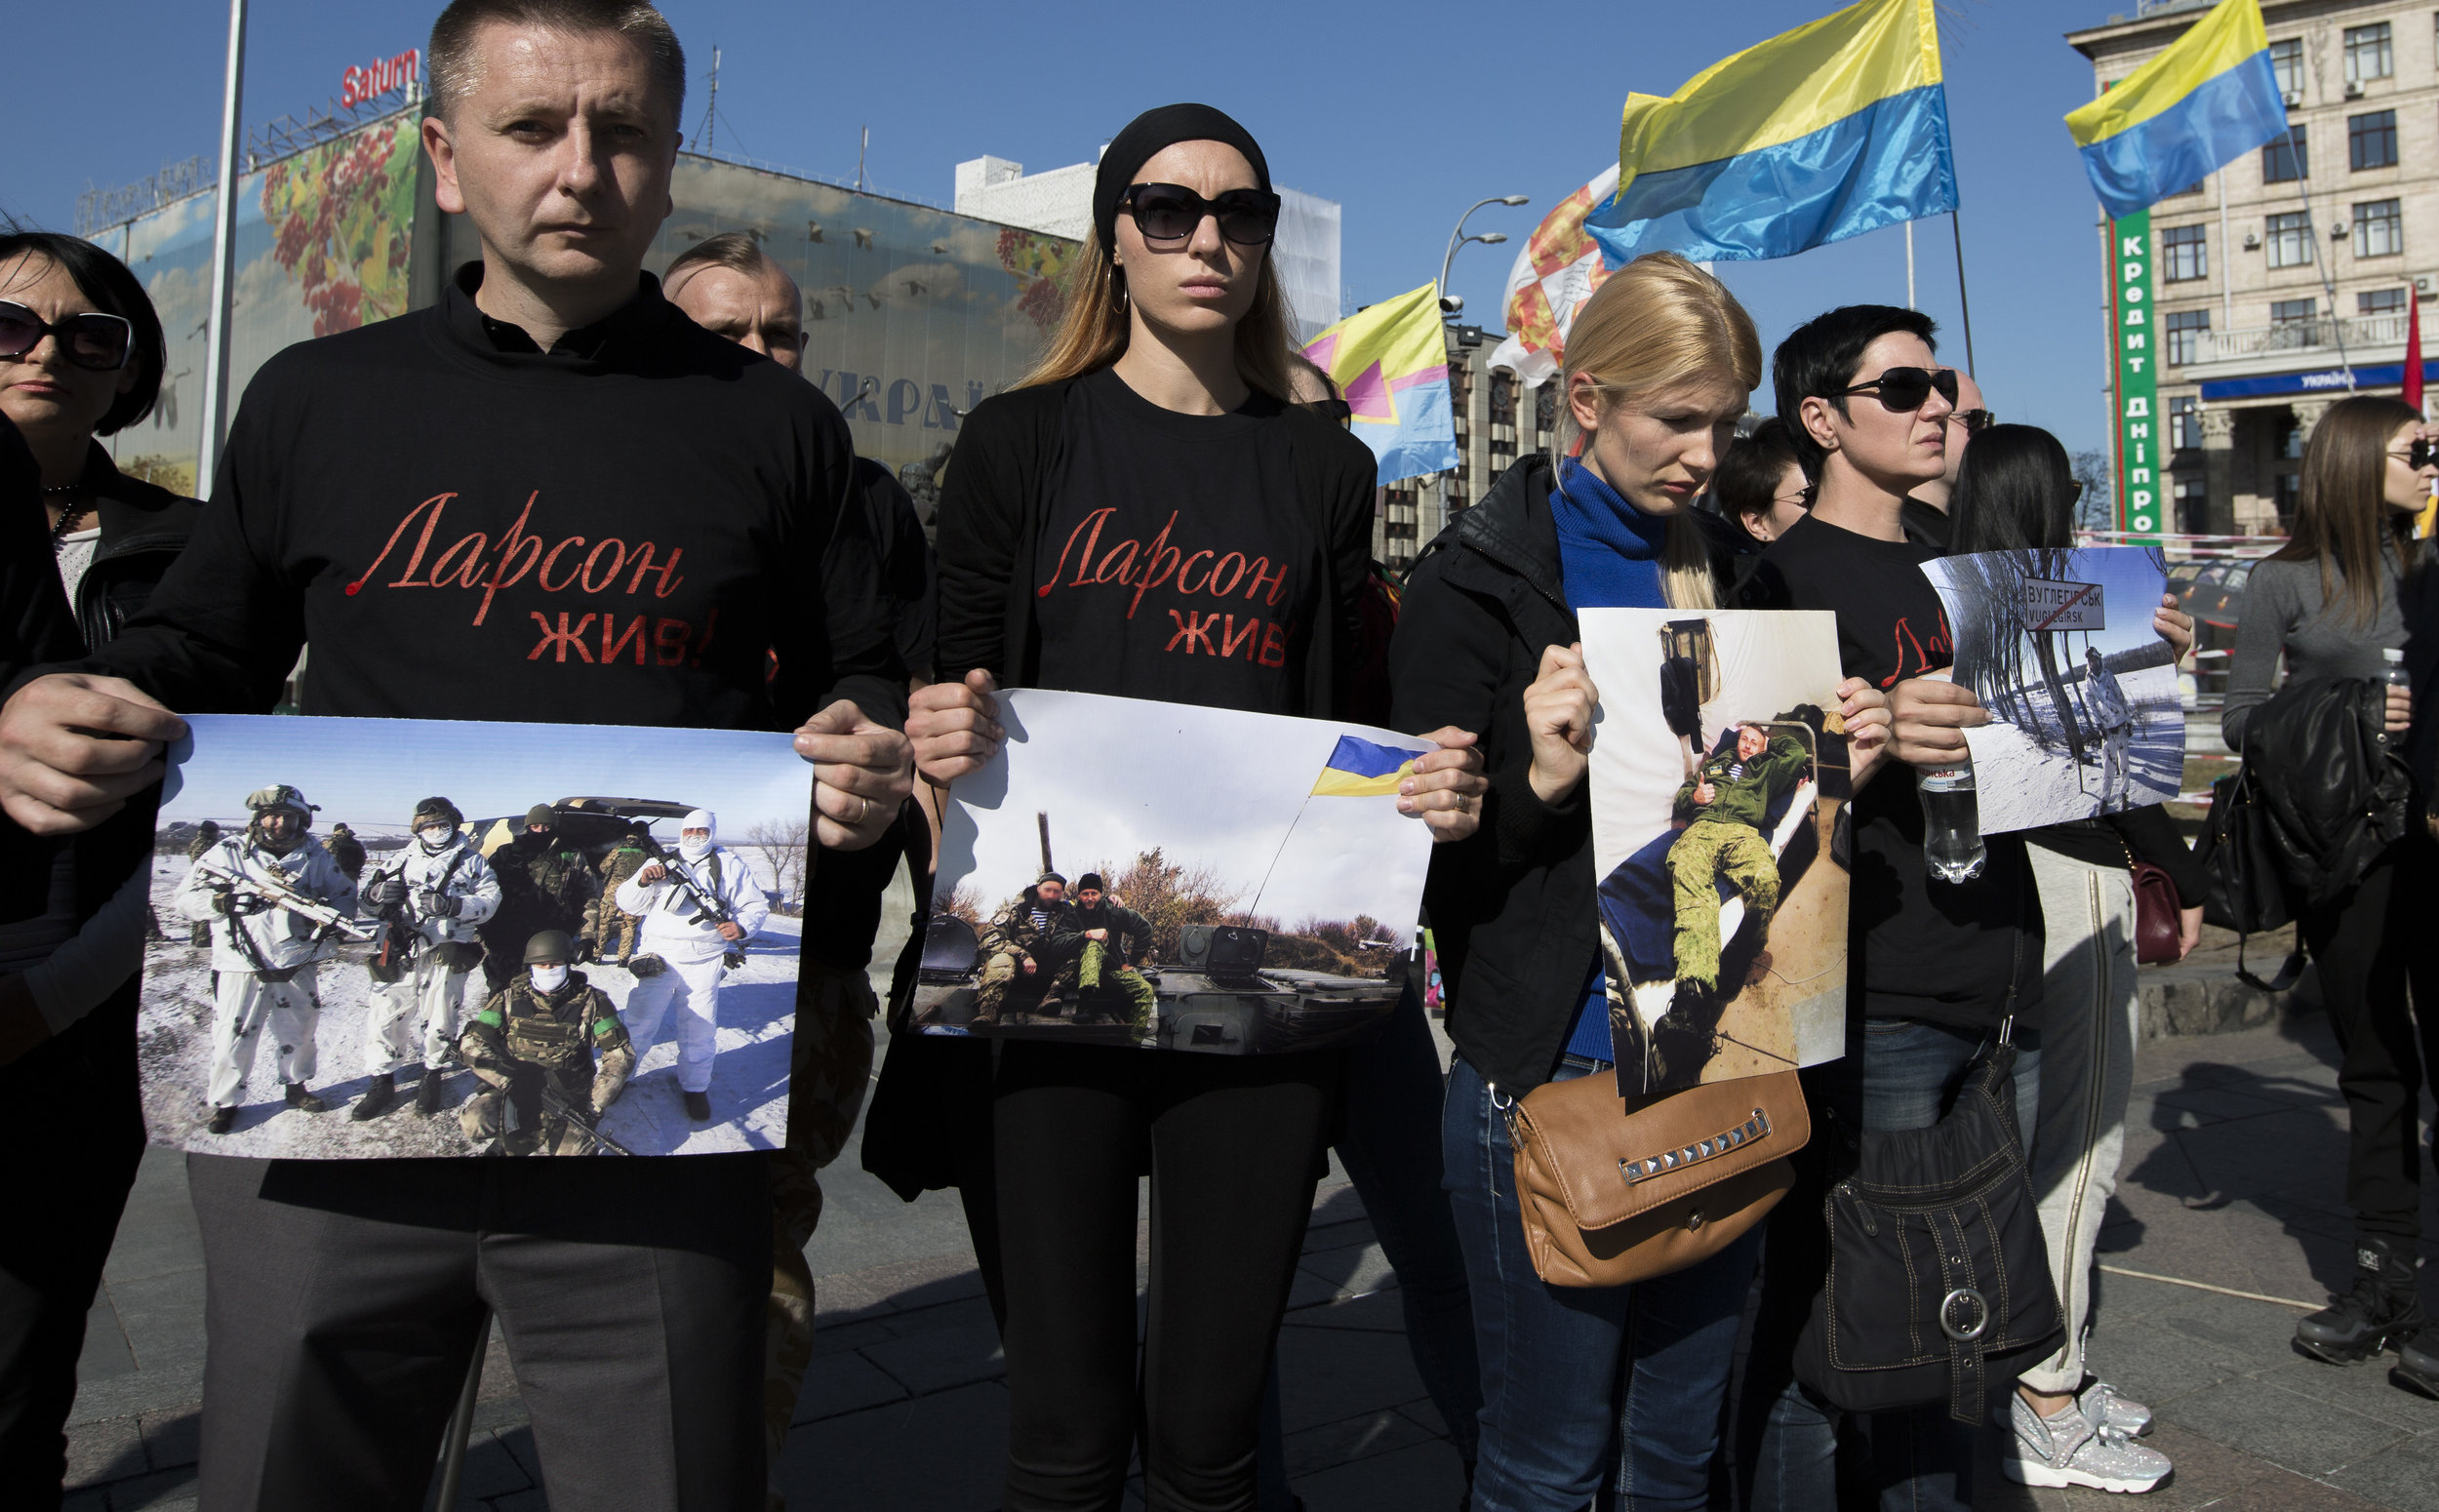 In a silent protest family members in Kiev hold photos of loved ones killed in the ongoing conflict in eastern Ukraine.